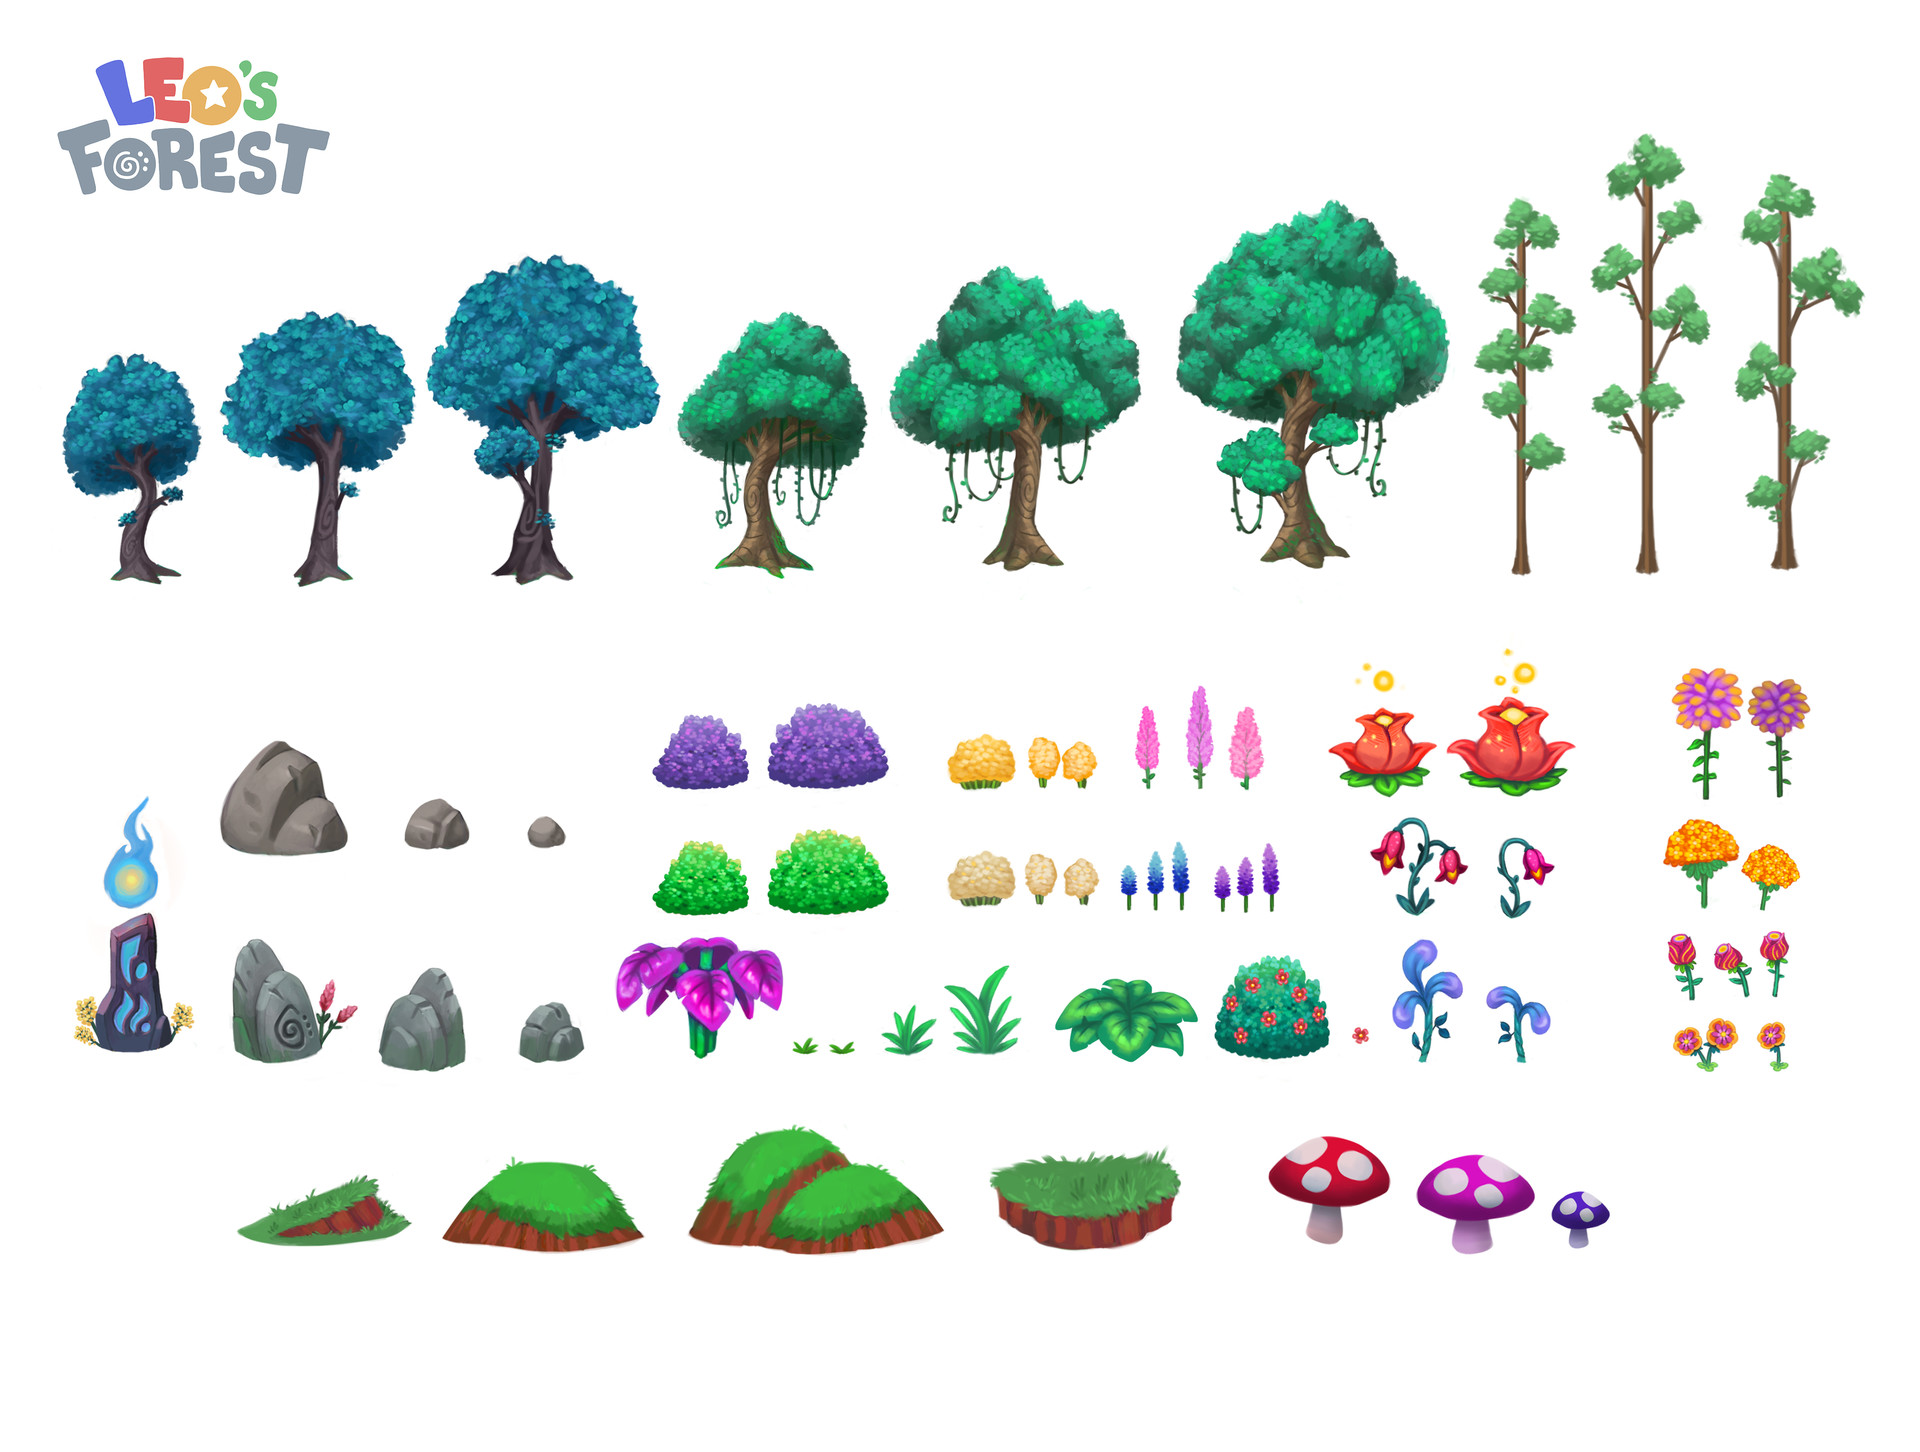 Luigi lucarelli leo s forest panoramic assets 1